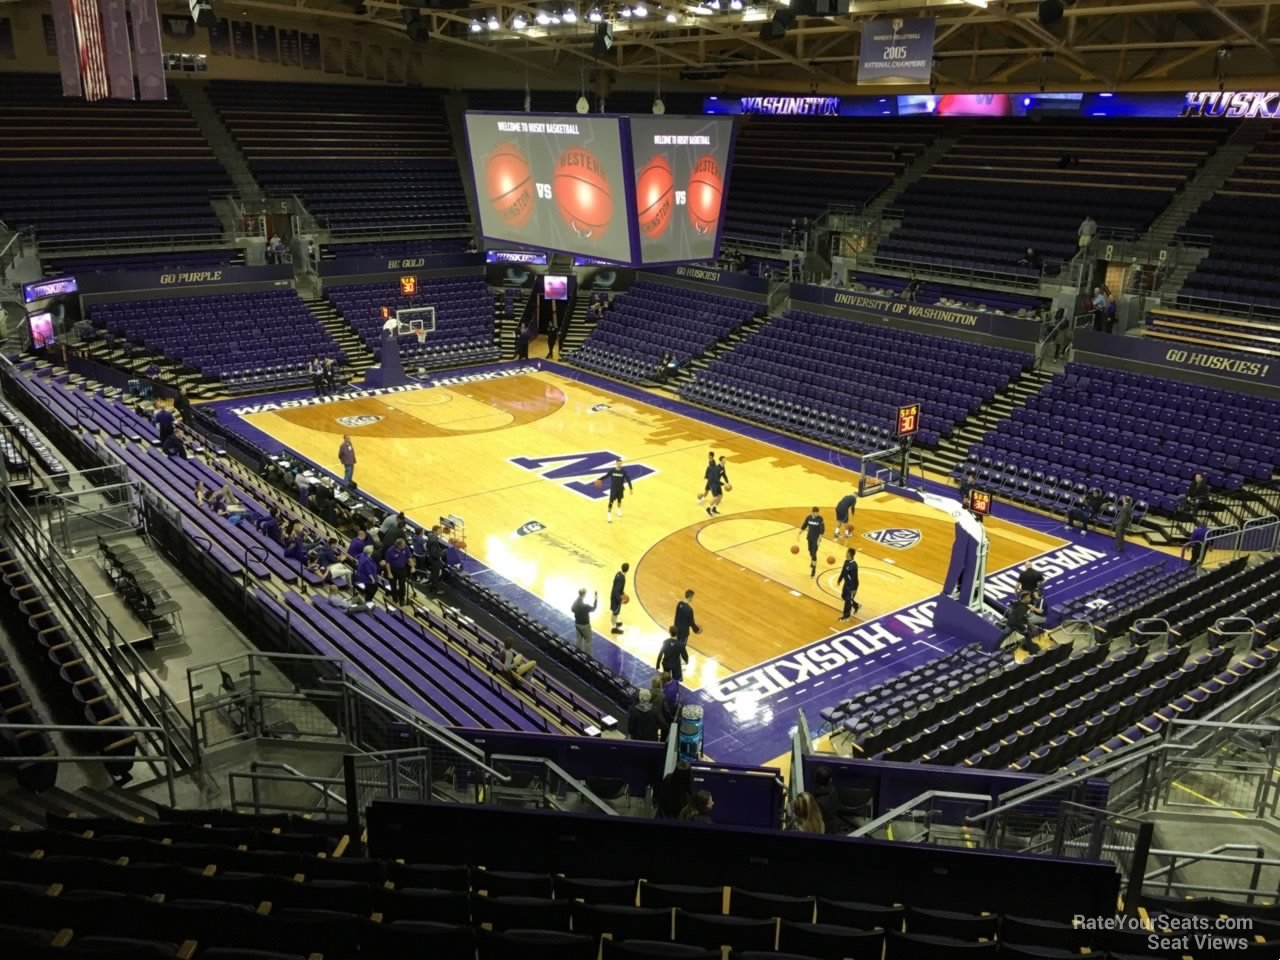 Seat View for Alaska Airlines Arena Section 13, Row 24